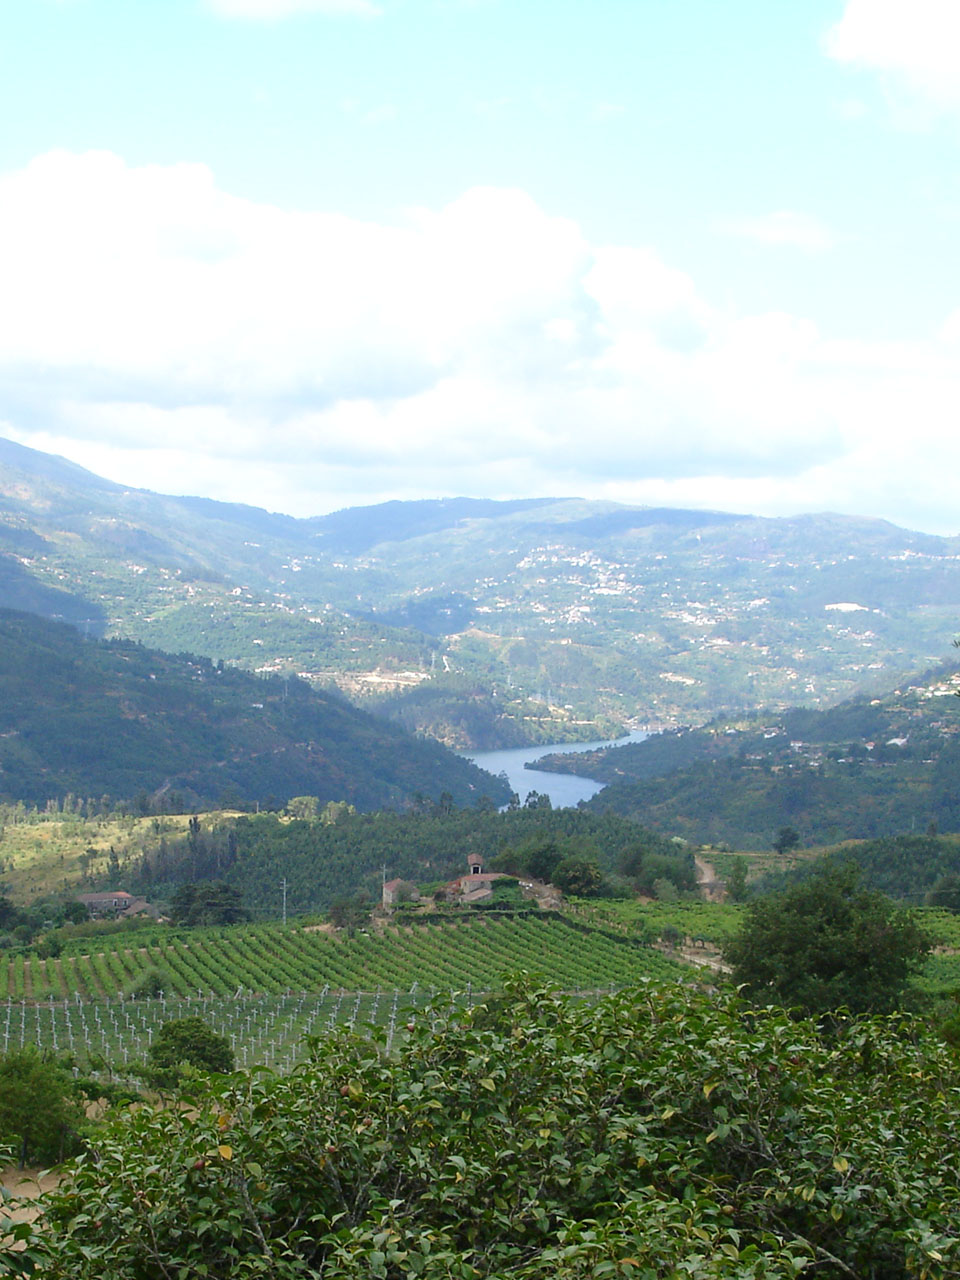 The Vinho Verde Region